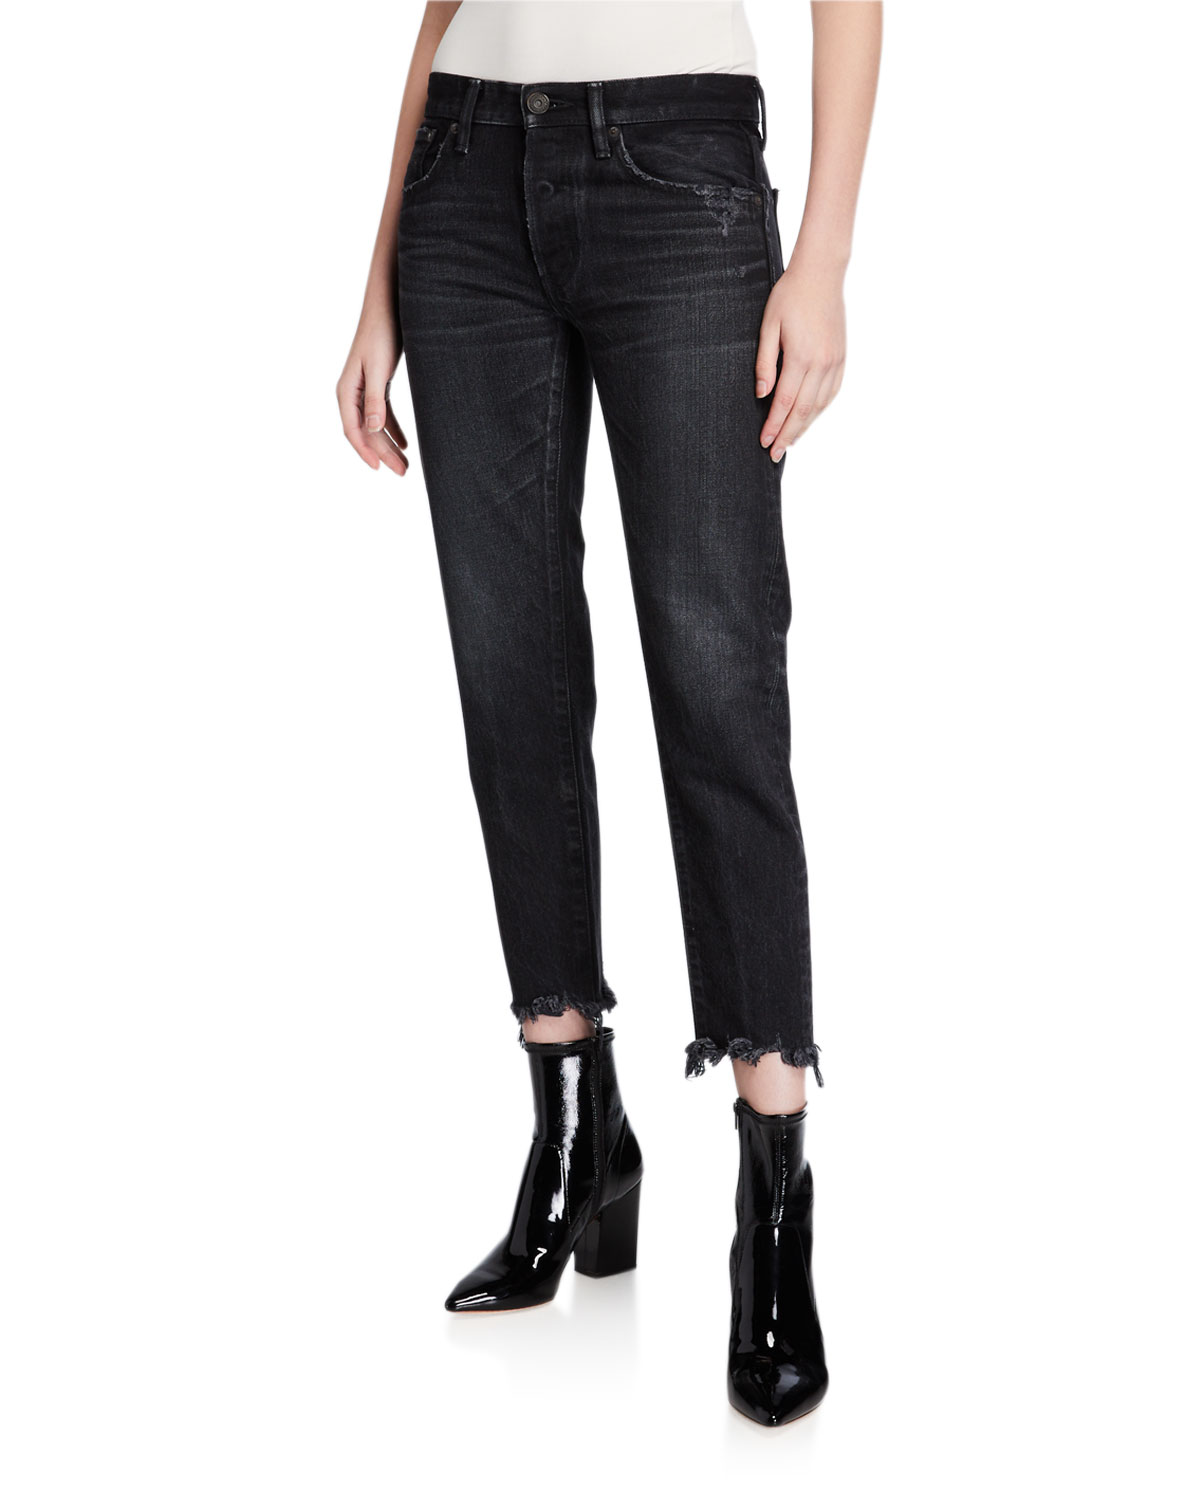 MOUSSY VINTAGE Staley Tapered Ankle Jeans with Shredded Hem